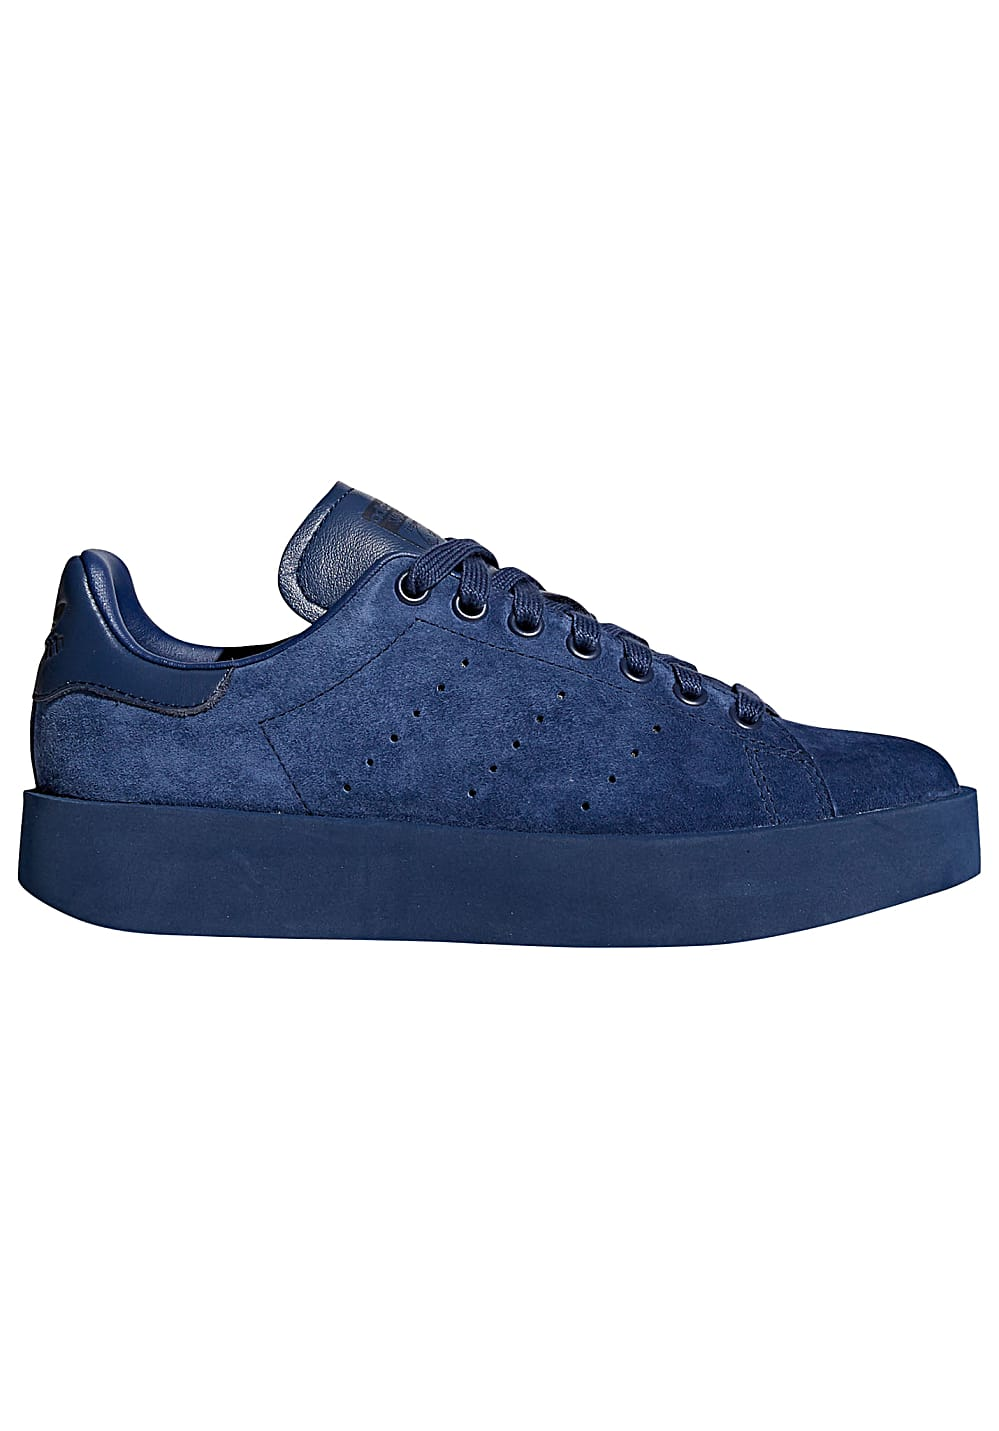 ADIDAS ORIGINALS Stan Smith Bold - Sneakers for Women - Blue